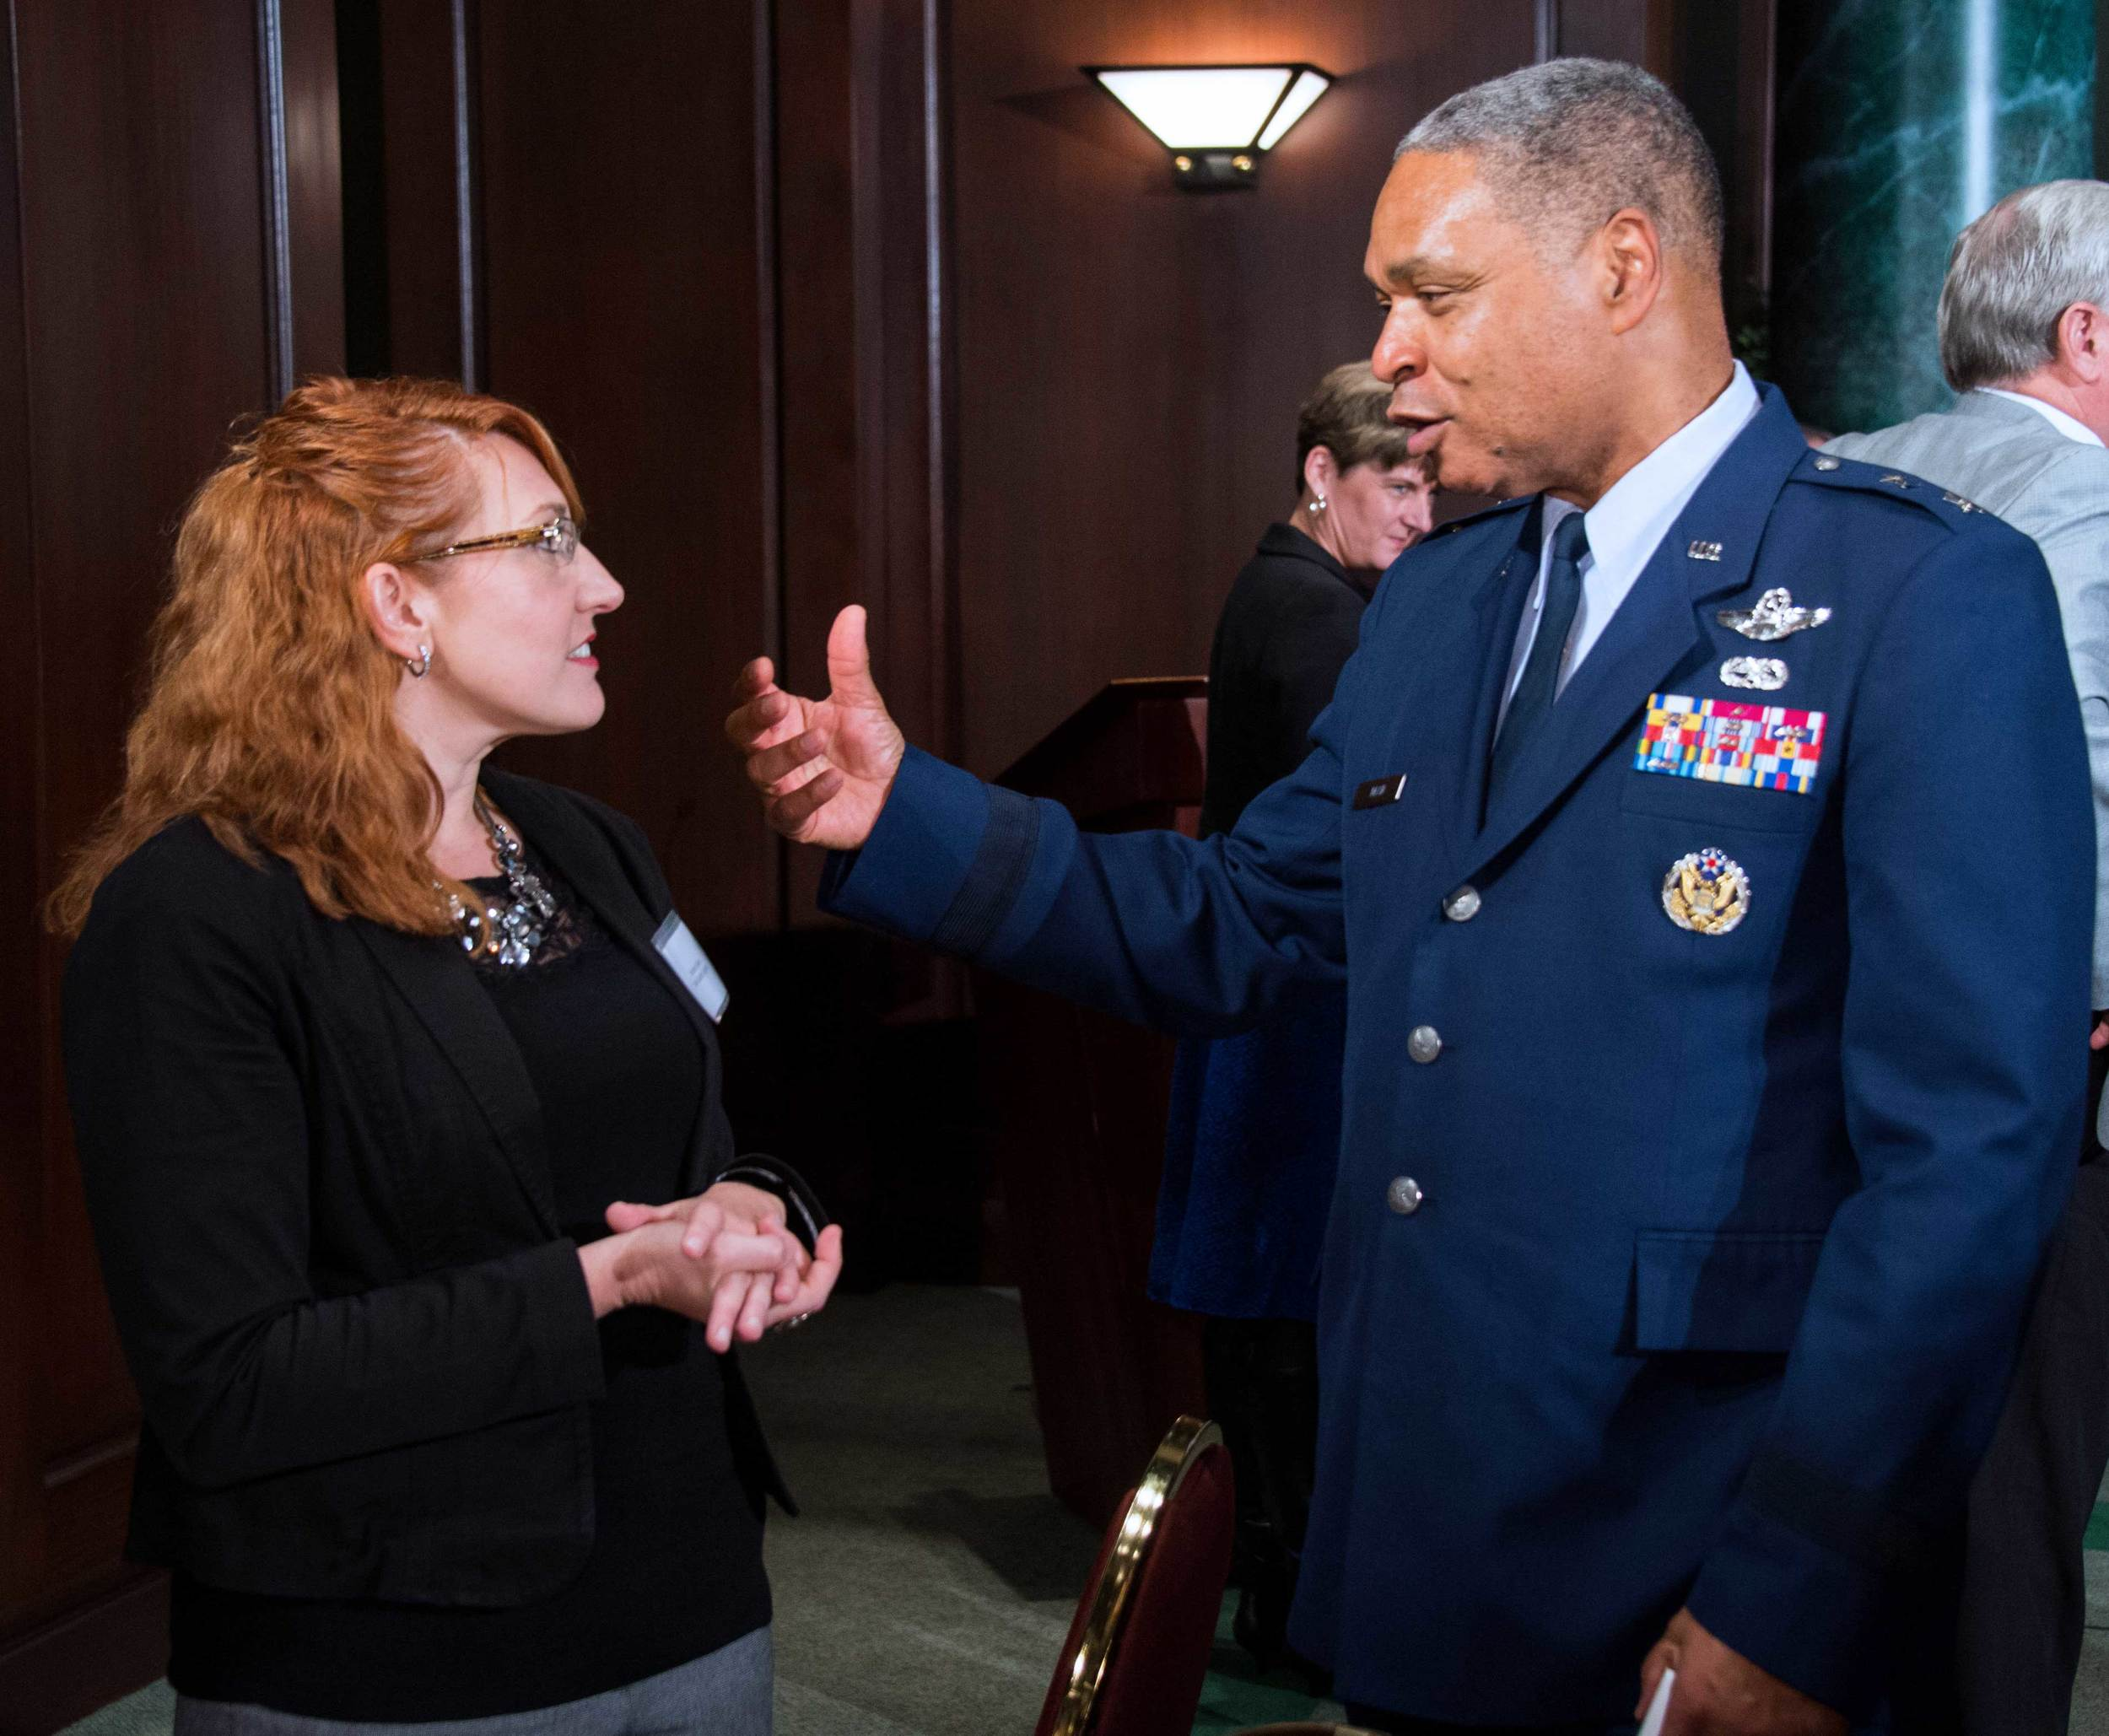 Kristine Glenn, Total Quality Logistics and Major General Garry Dean, National Guard Bureau